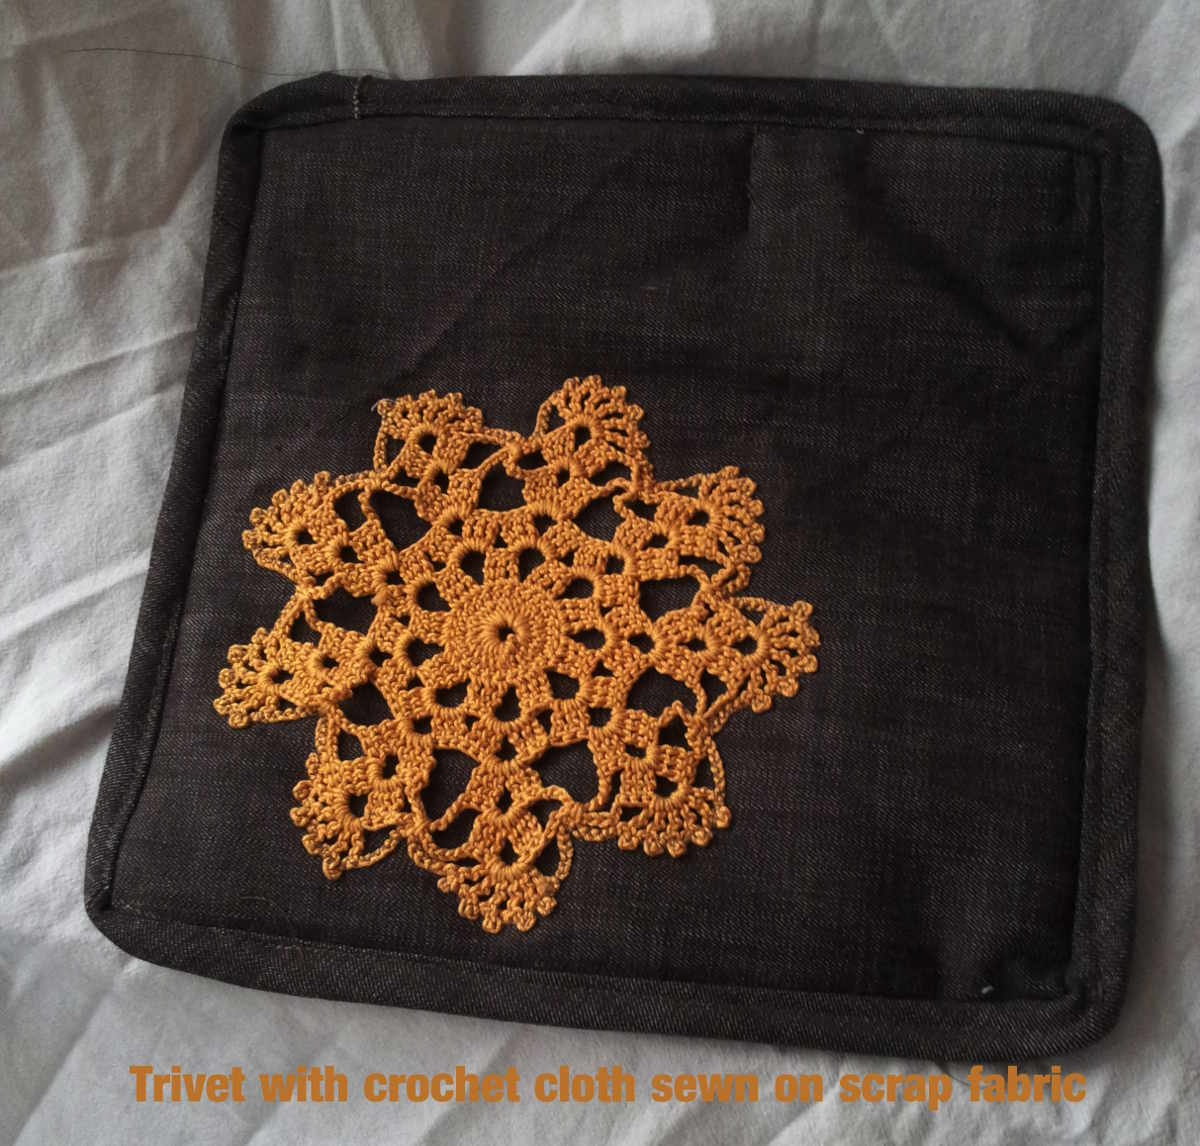 Trivet with crochet cloth on scrap fabric